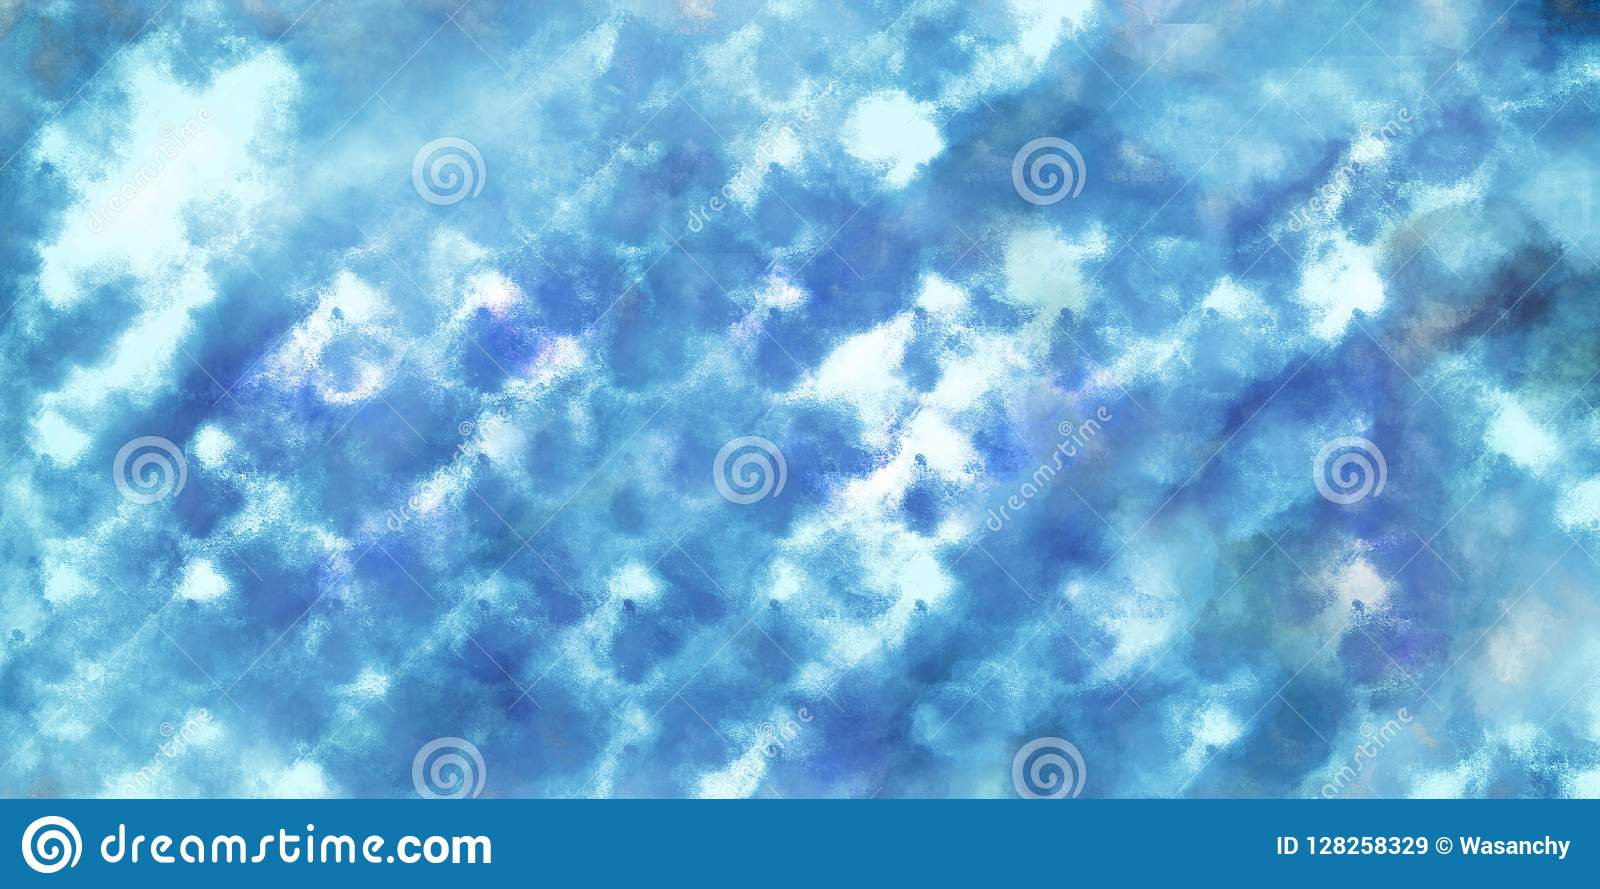 Blue watercolor abstract pattern background.